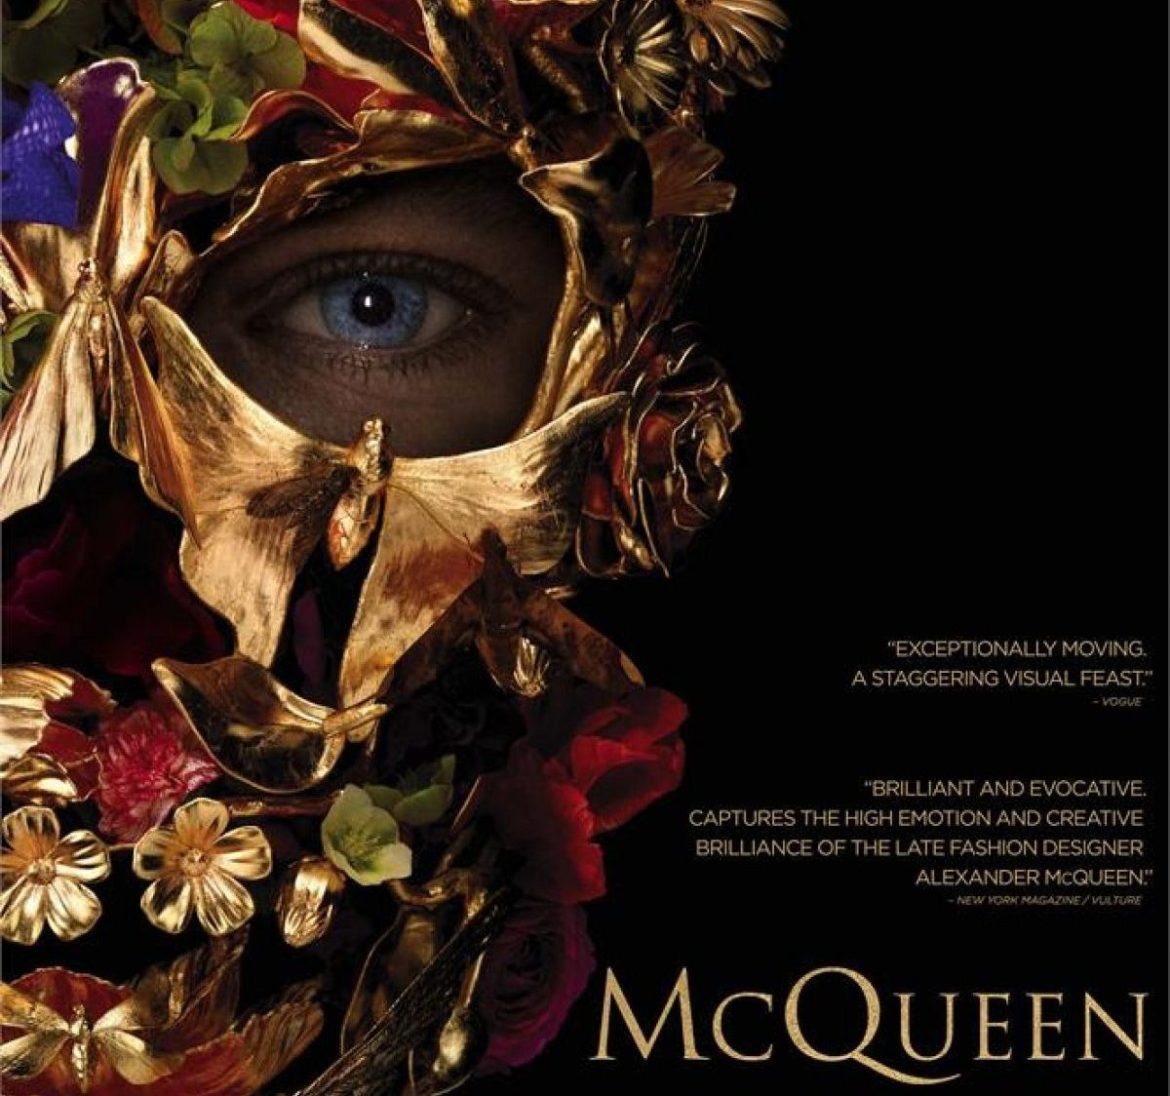 mcqueen-film-review-documentary-claire-bueno-thoselondonchicks